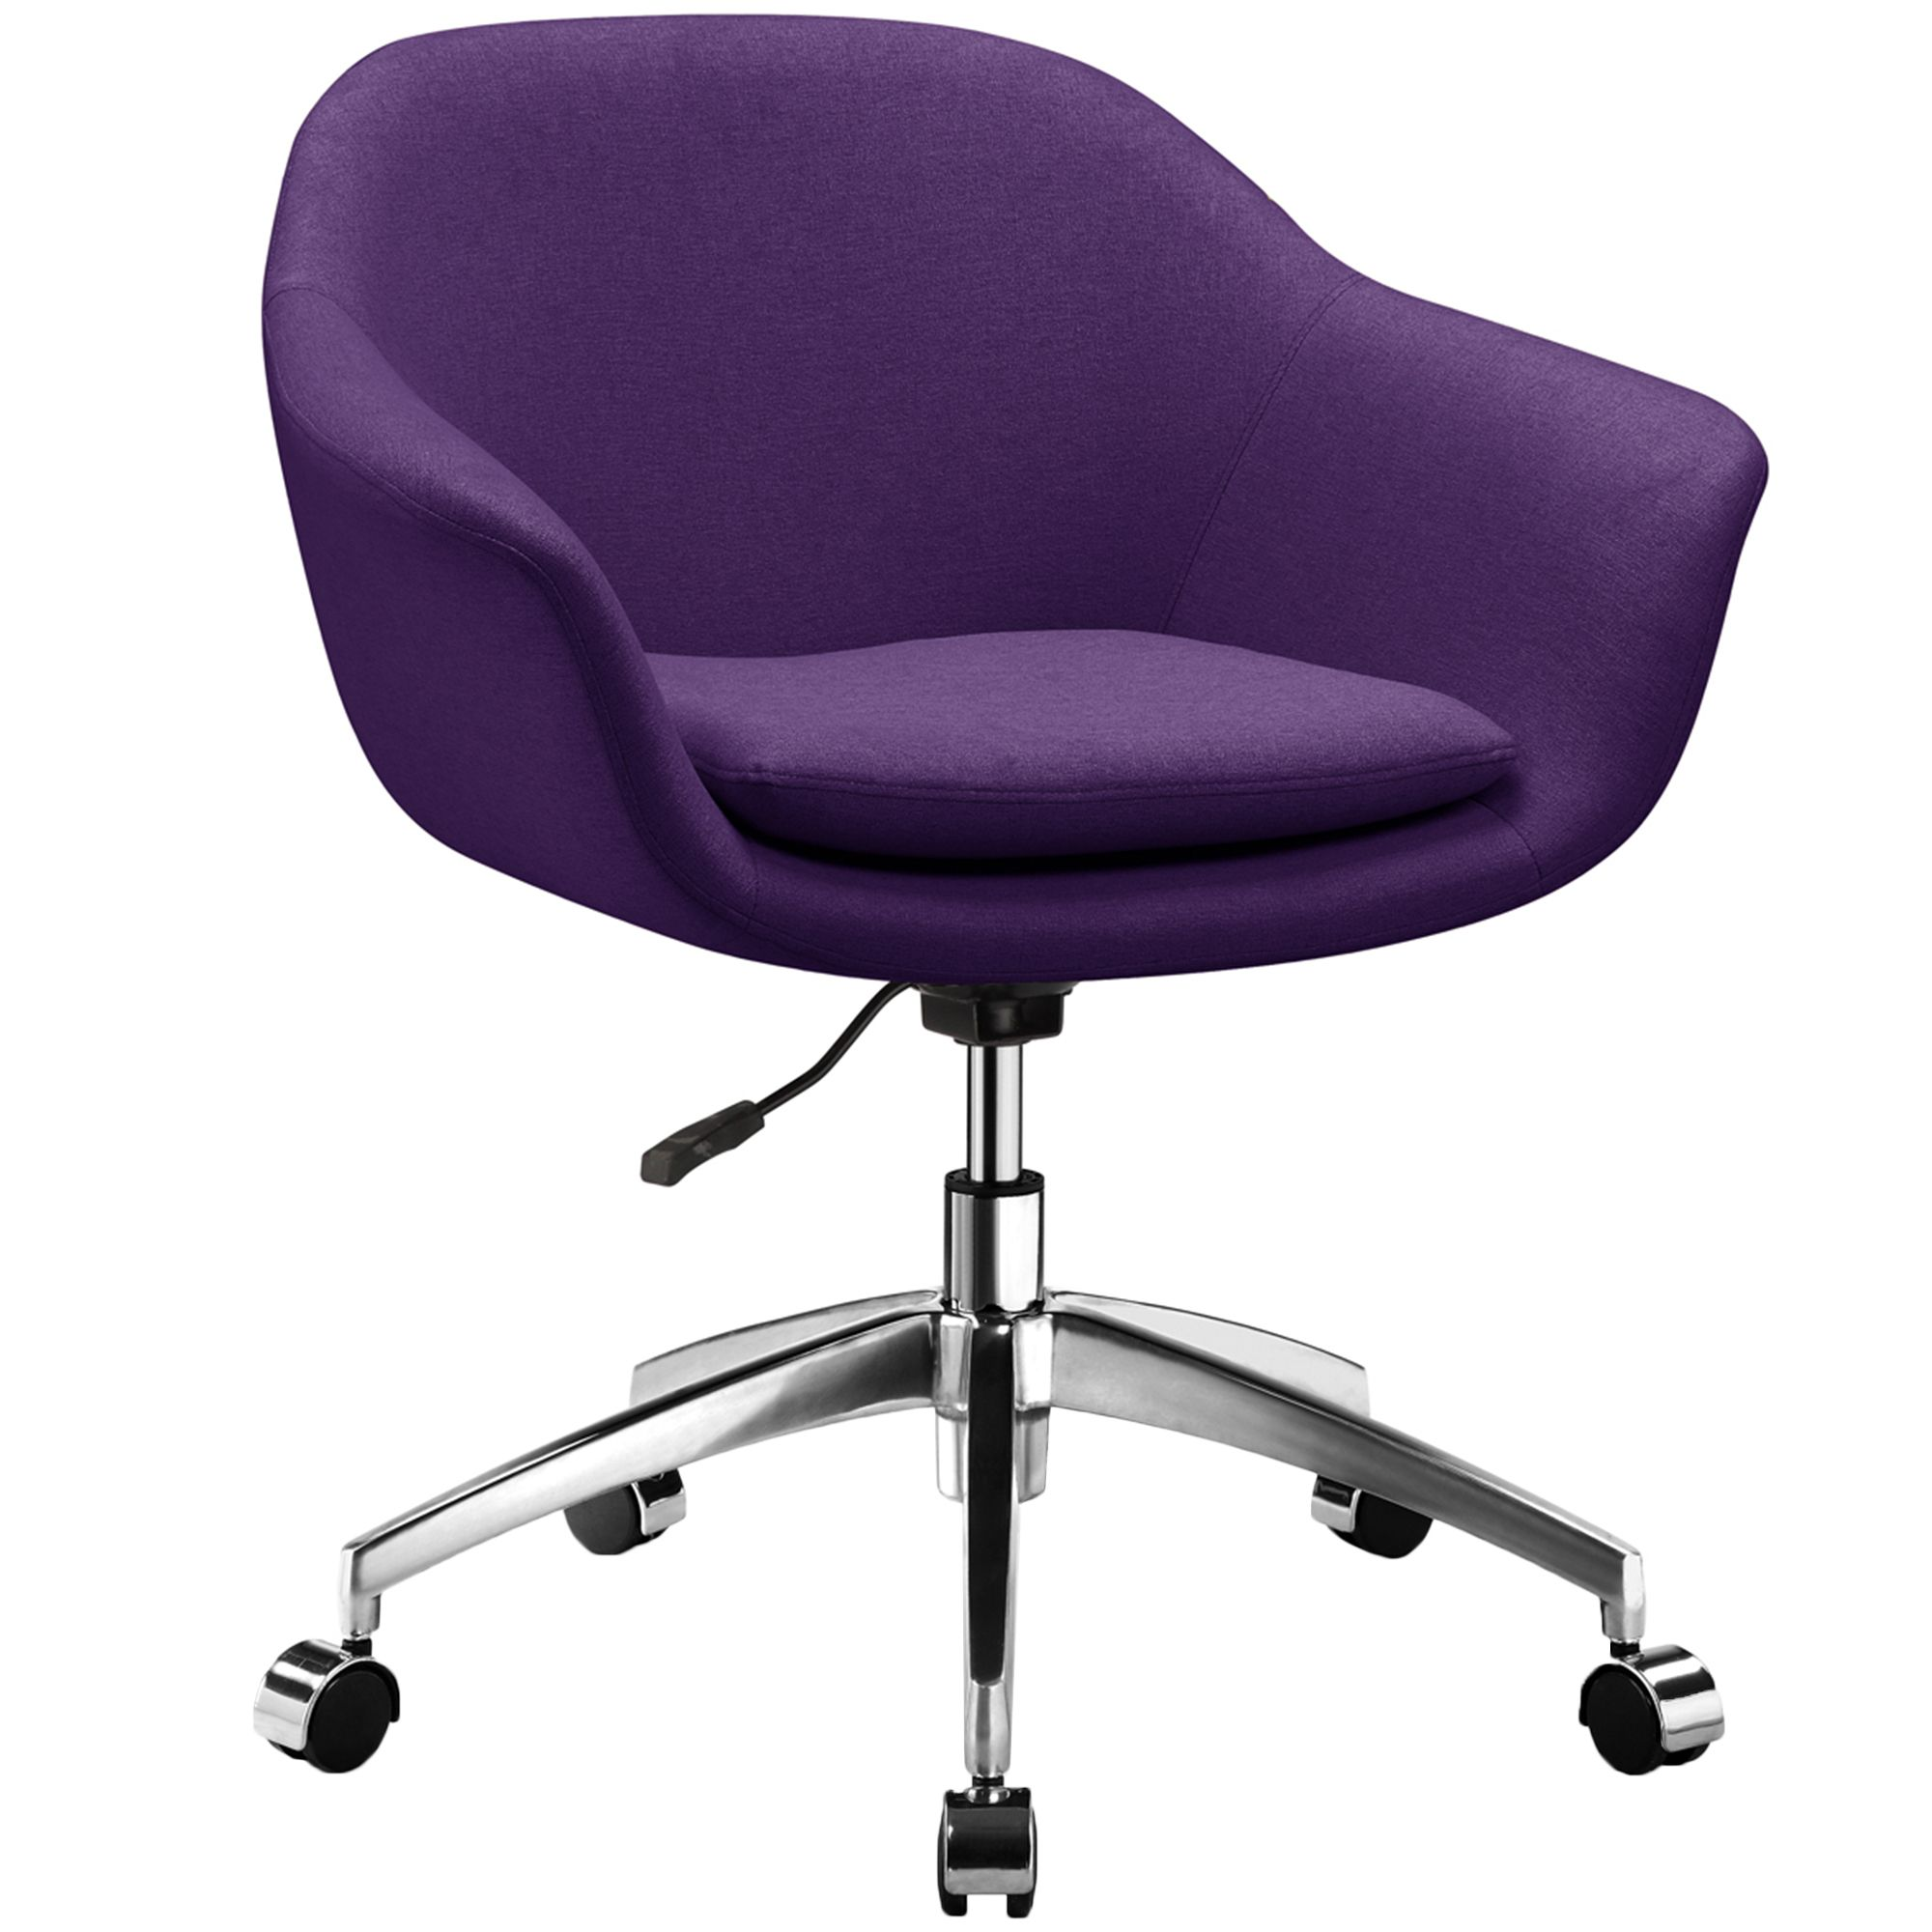 Nori Fabric Modern Office Chair Modern Office Chair Office Chairs For Sale Office Chair